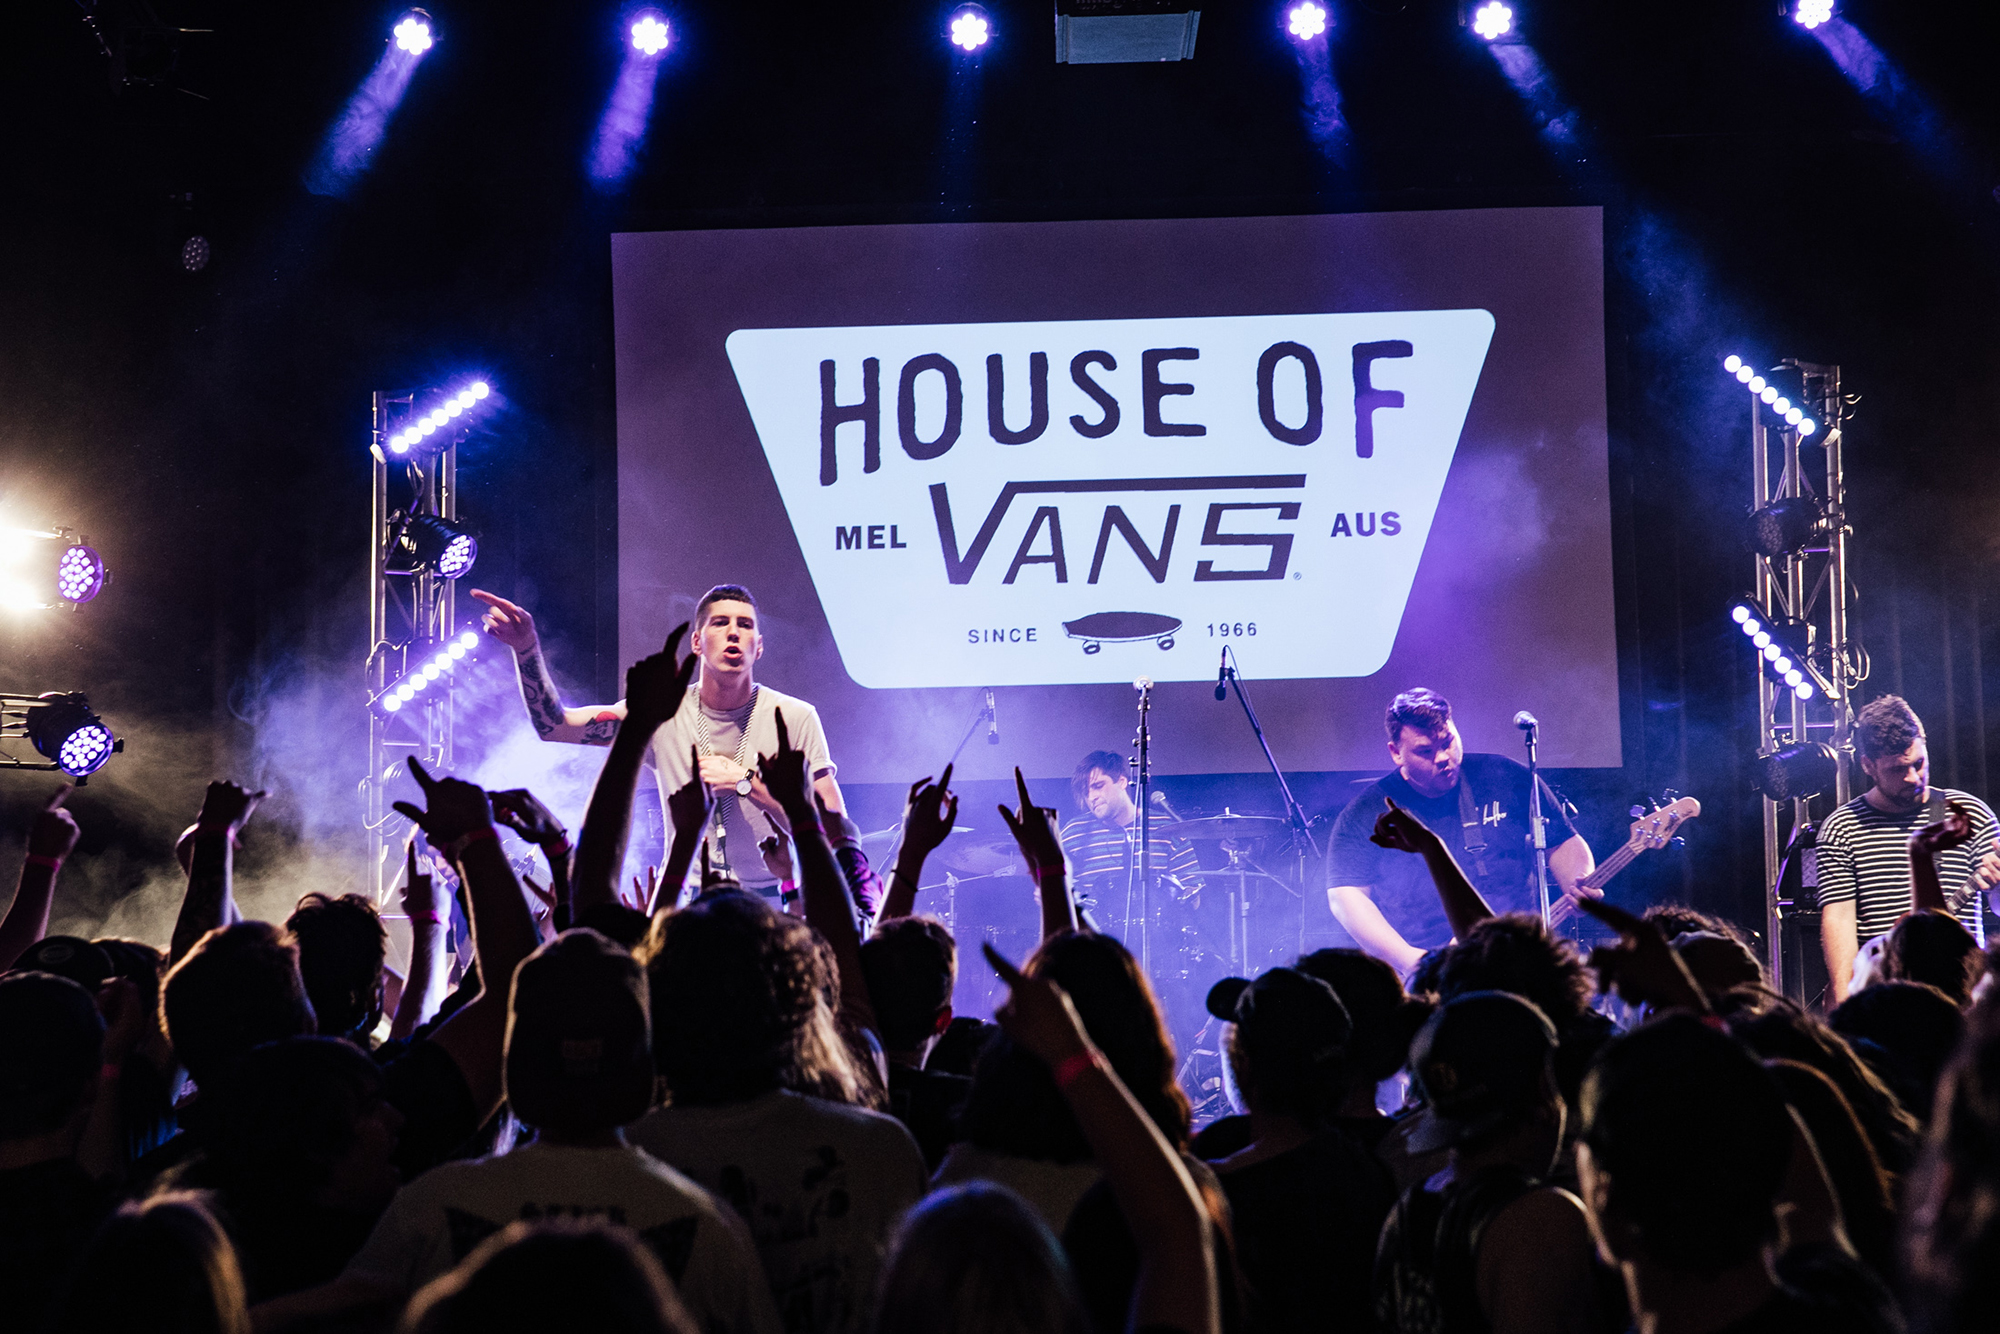 House of Vans Auckland